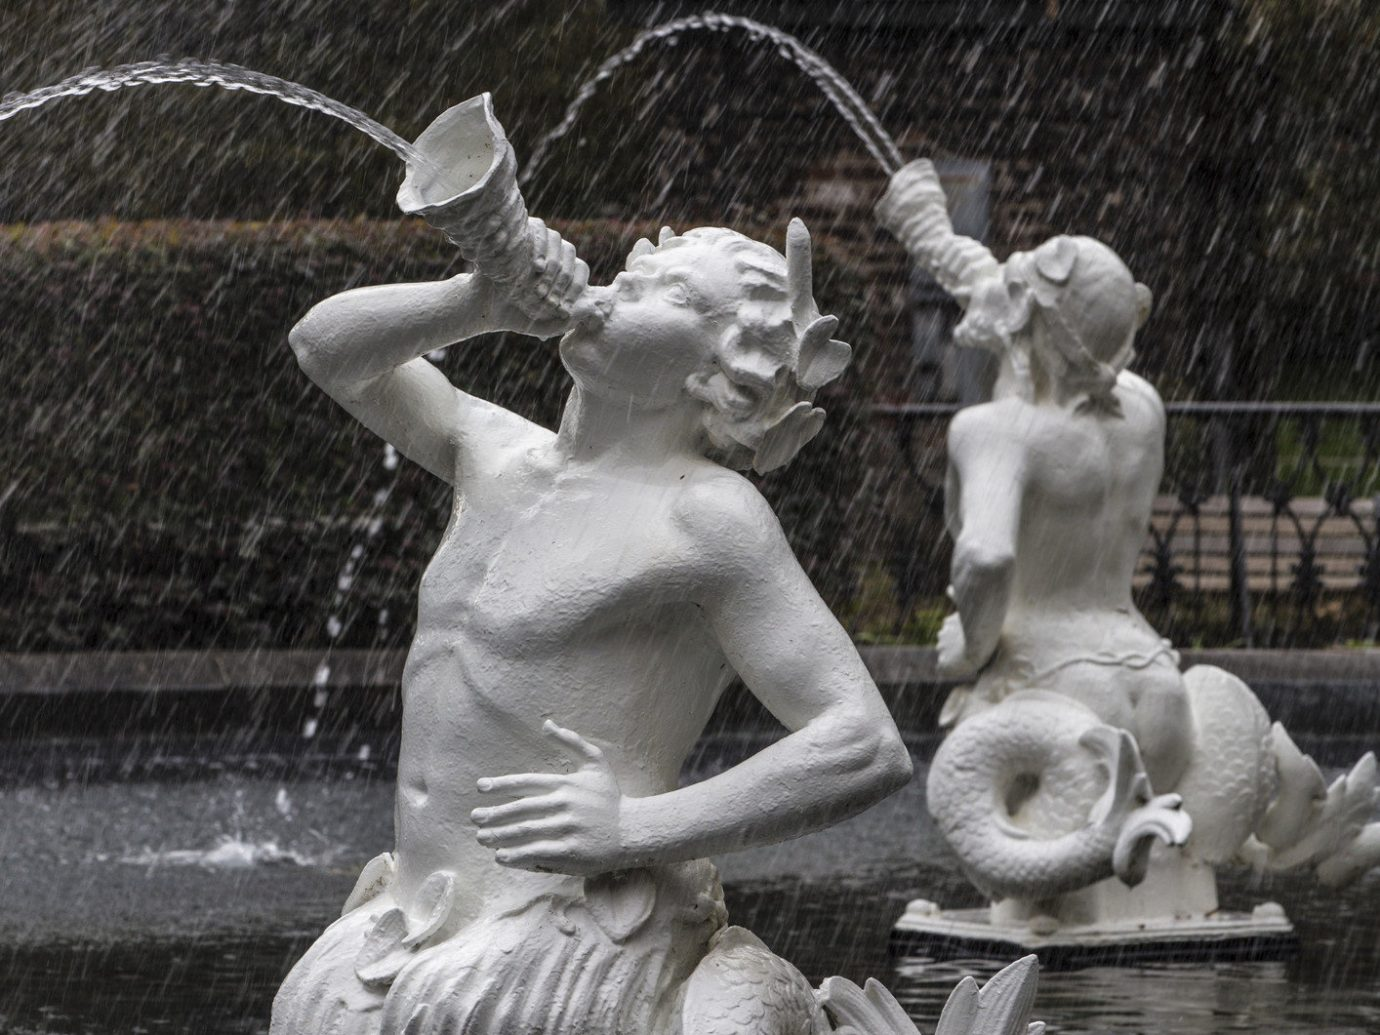 Romance Trip Ideas statue outdoor sculpture human positions monument fountain art water feature mythology ancient history temple